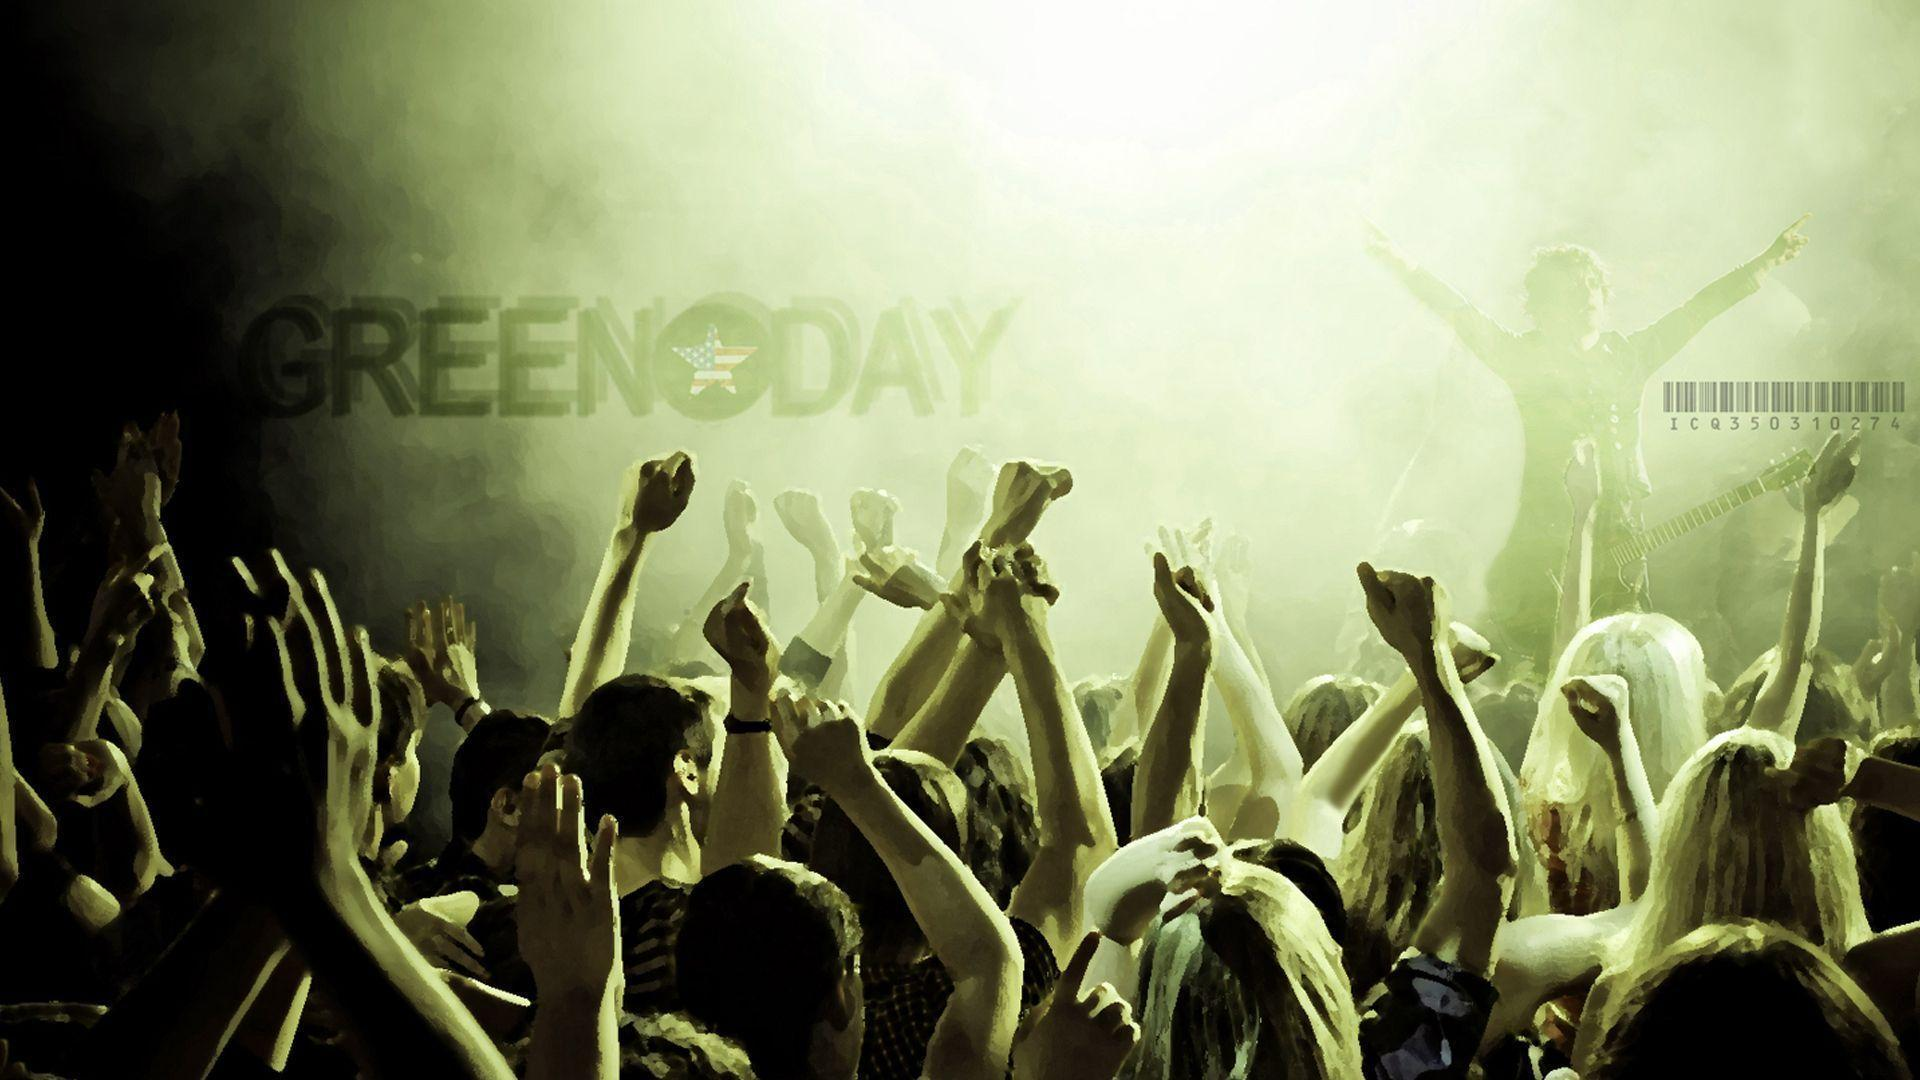 Download Music Green Day Wallpapers 1920x1080